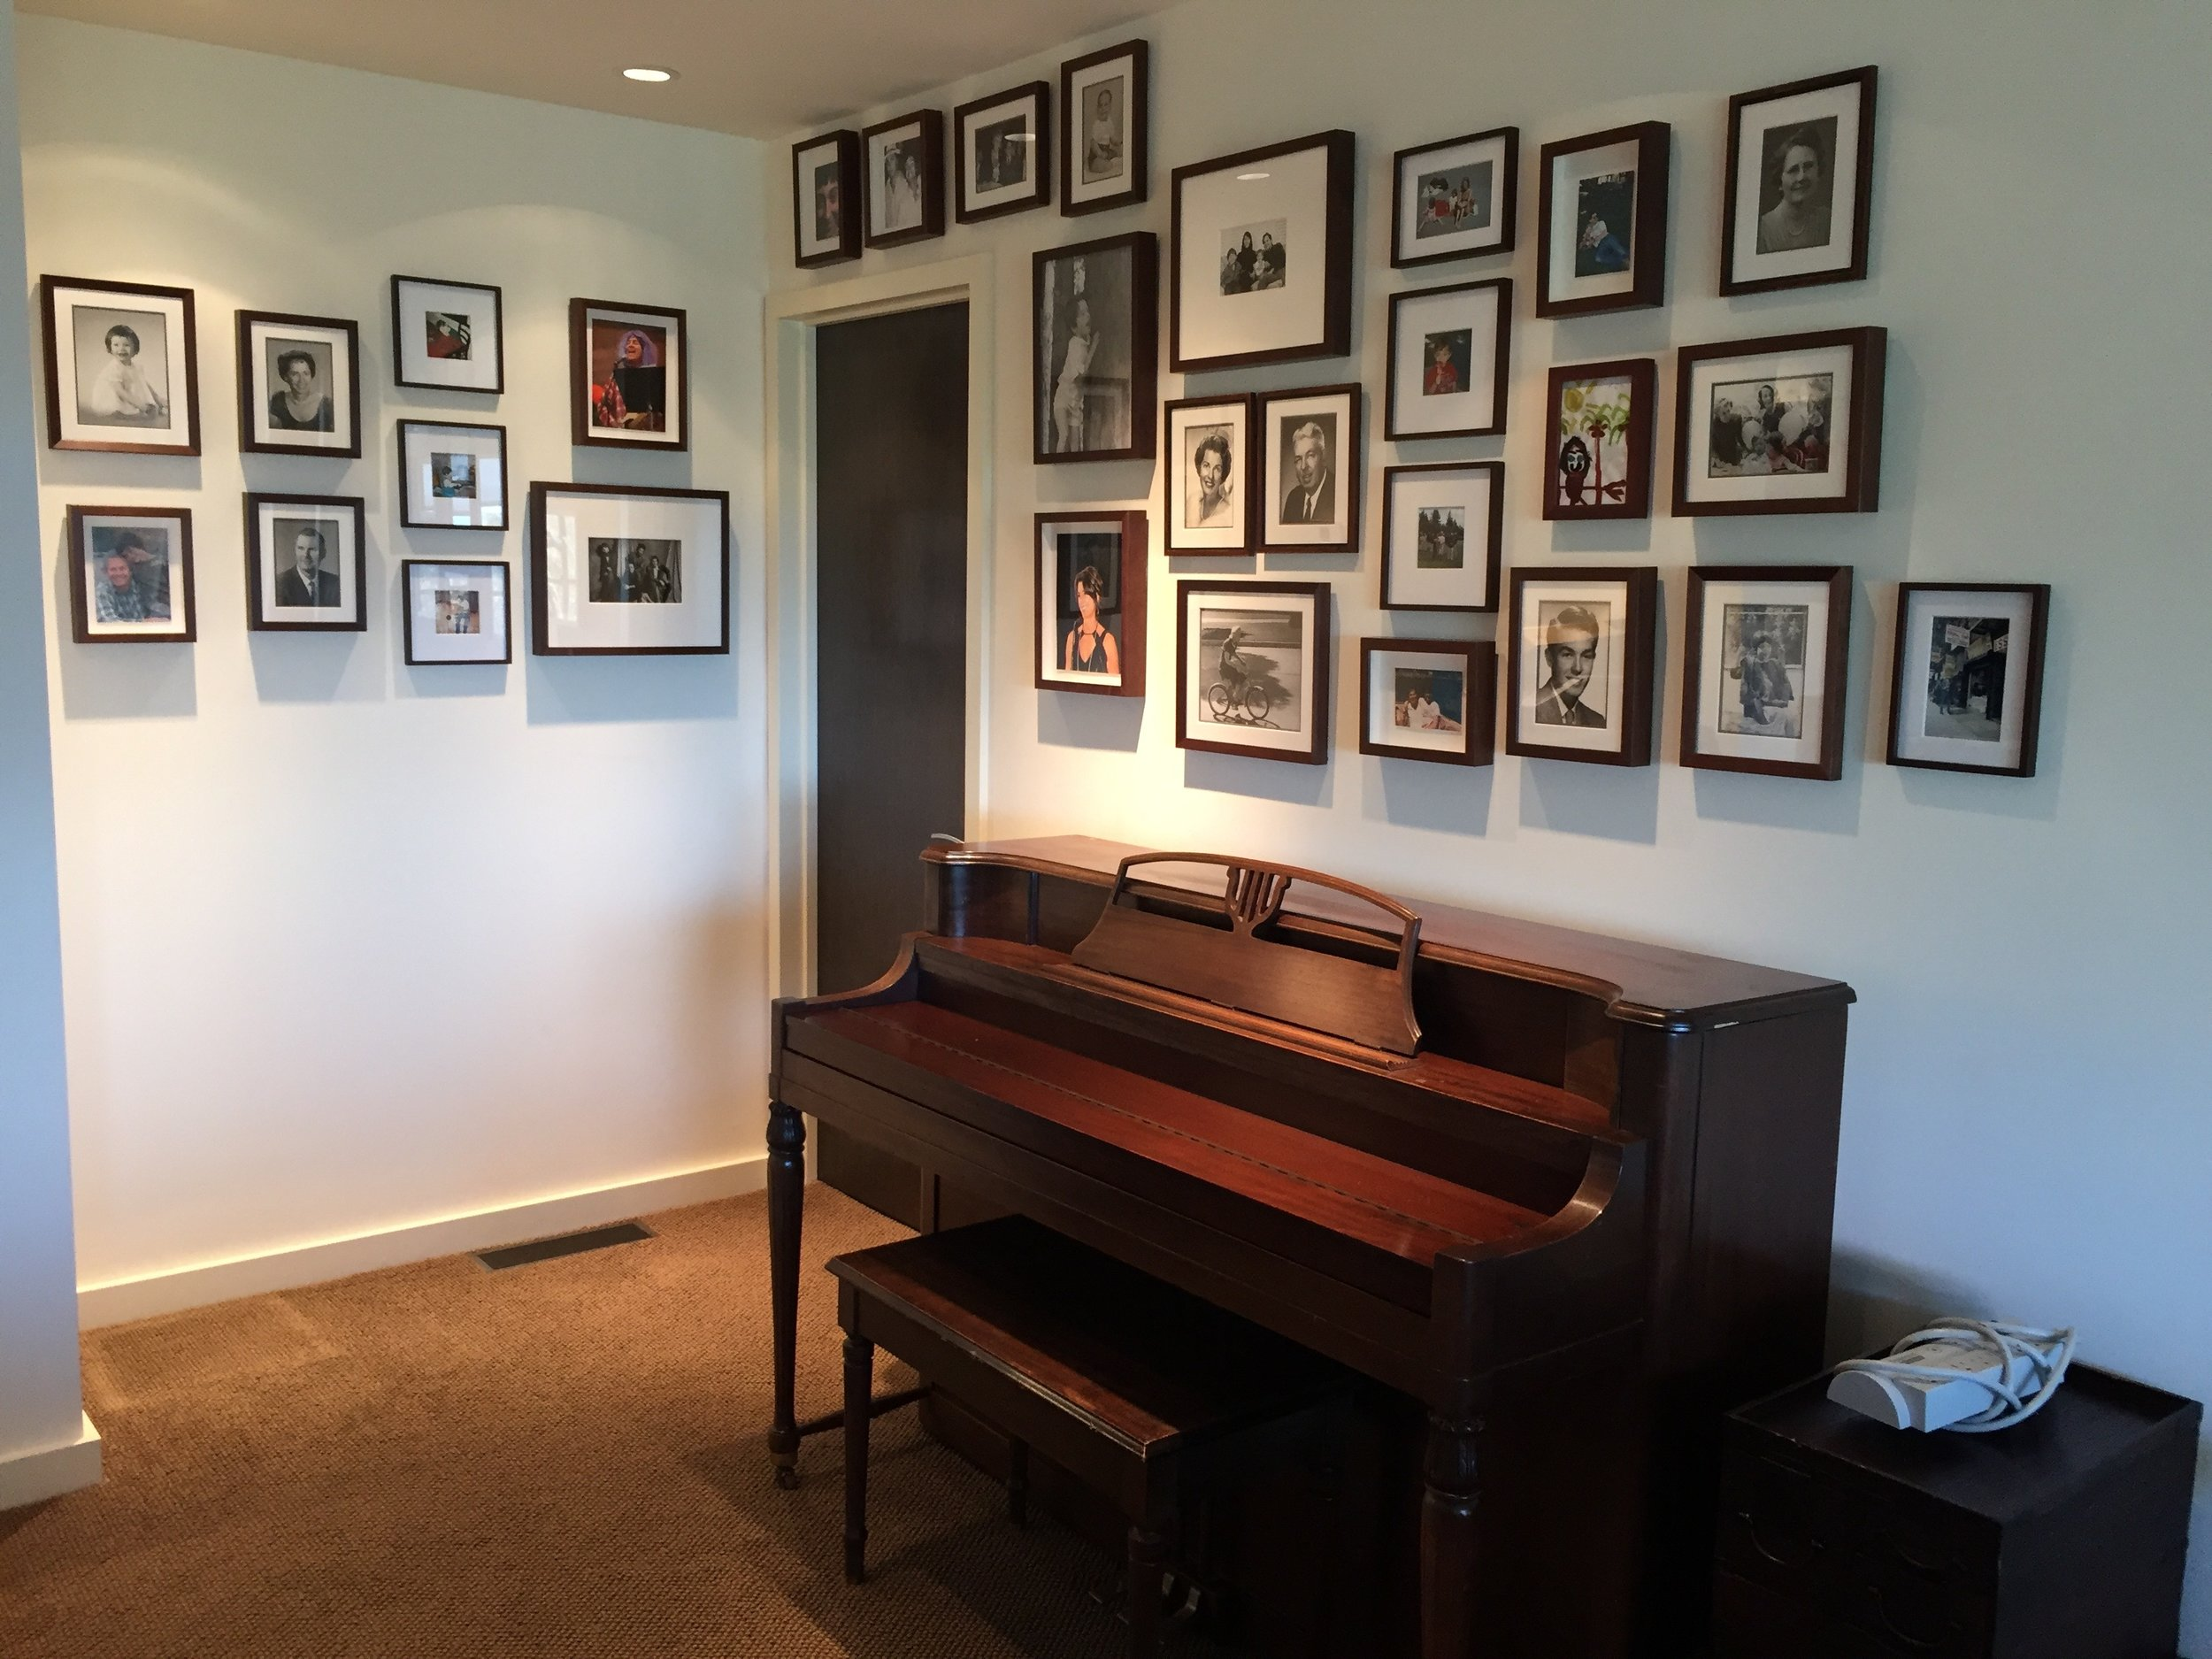 ARTIST : INSTALLATION OF FAMILY PHOTOS   INTERIORS : MARIANNE MOORE